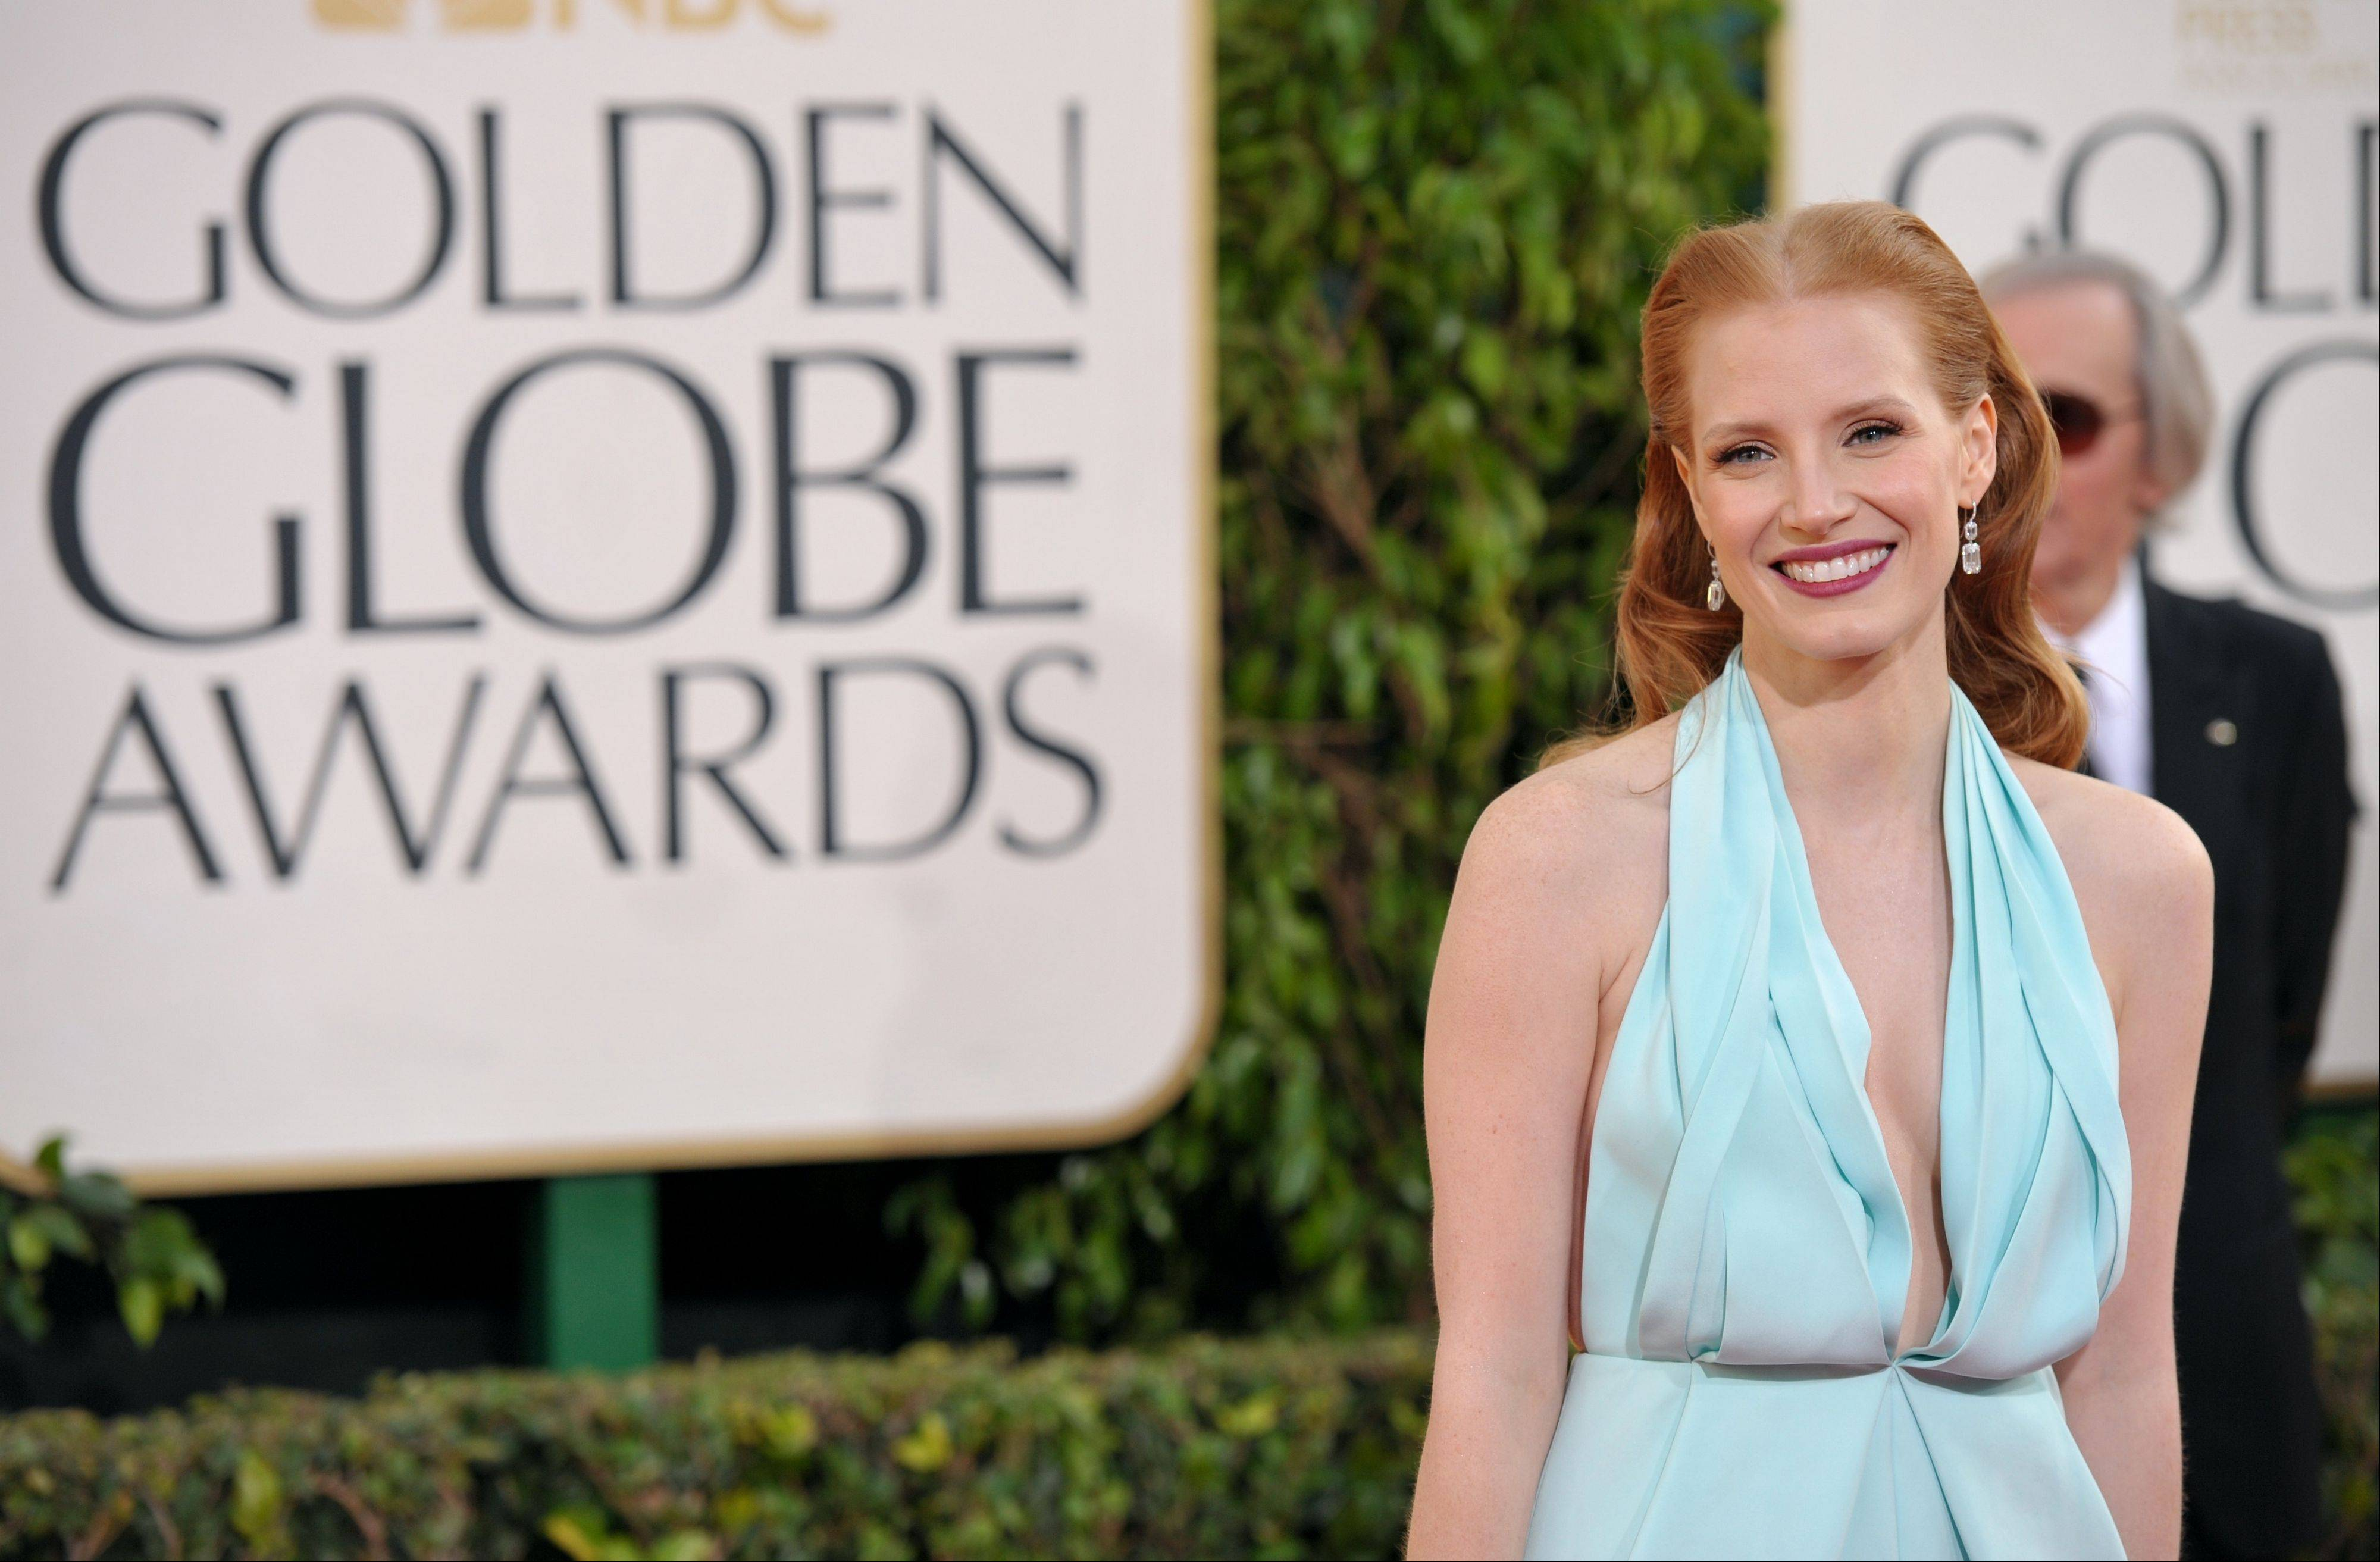 """Zero Dark Thirty"" star Jessica Chastain arrives at the 70th Annual Golden Globe Awards at the Beverly Hilton Hotel on Sunday Jan. 13, 2013, in Beverly Hills, Calif."